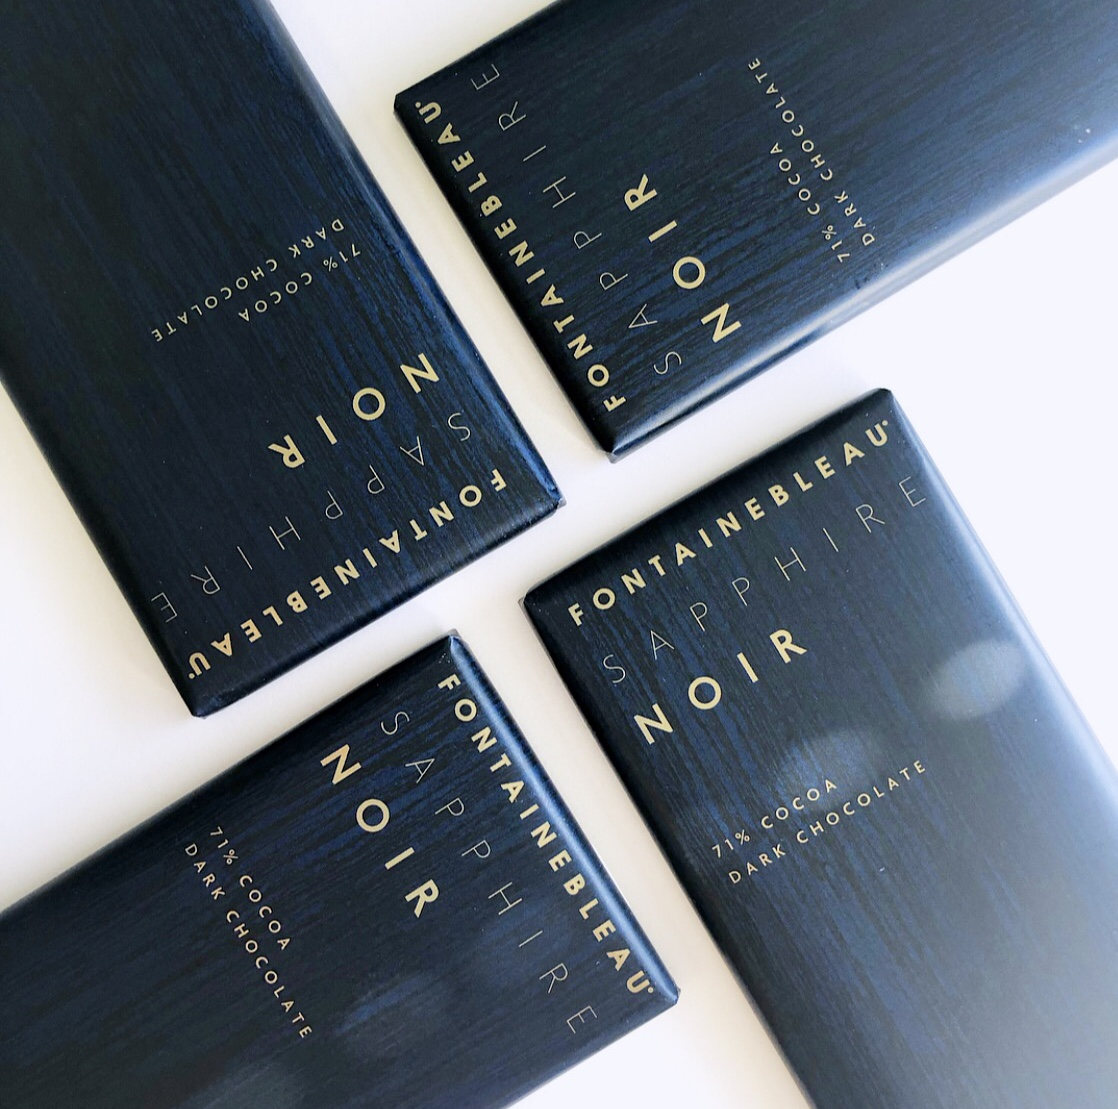 Fontainebleau Sapphire Noir Chocolate Packaging Design and Branding for Fontainebleau Hotel Miami